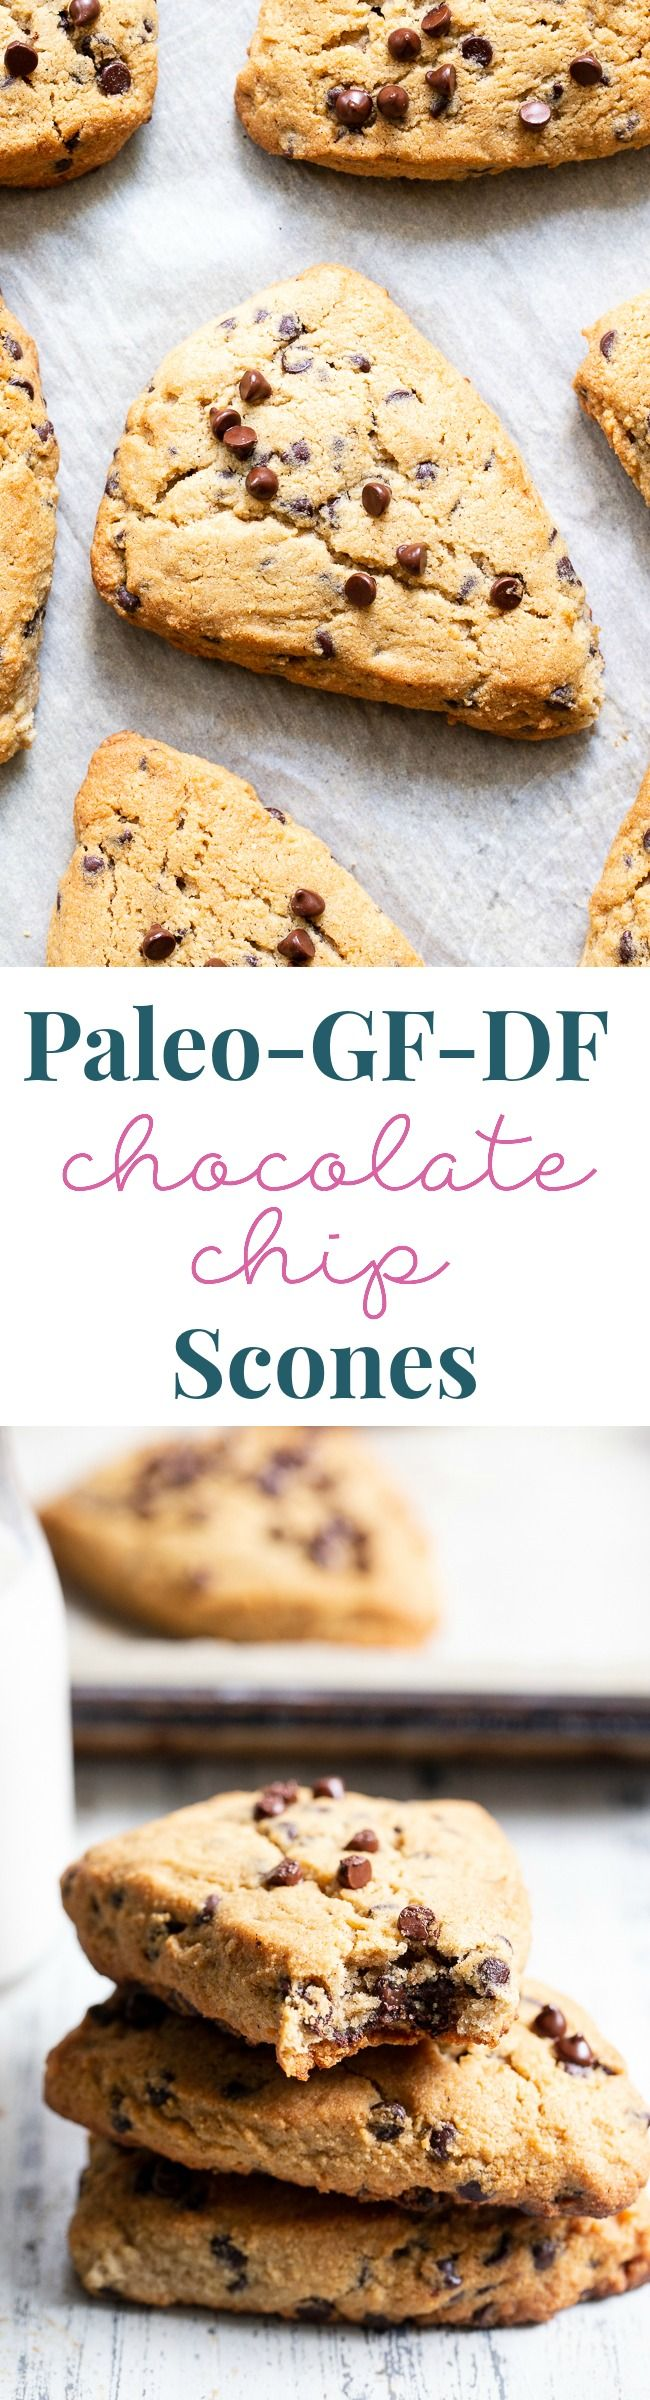 Chocolate Chip Scones (Paleo, GF, DF Options) is part of Chocolate Chip Scones Paleo Gf W Df Options - These paleo scones are flaky, soft and packed with chocolate chips!  They're perfect for brunch, dessert, and anytime you need something special and sweet!  Gluten free, grain free, with dairyfree options